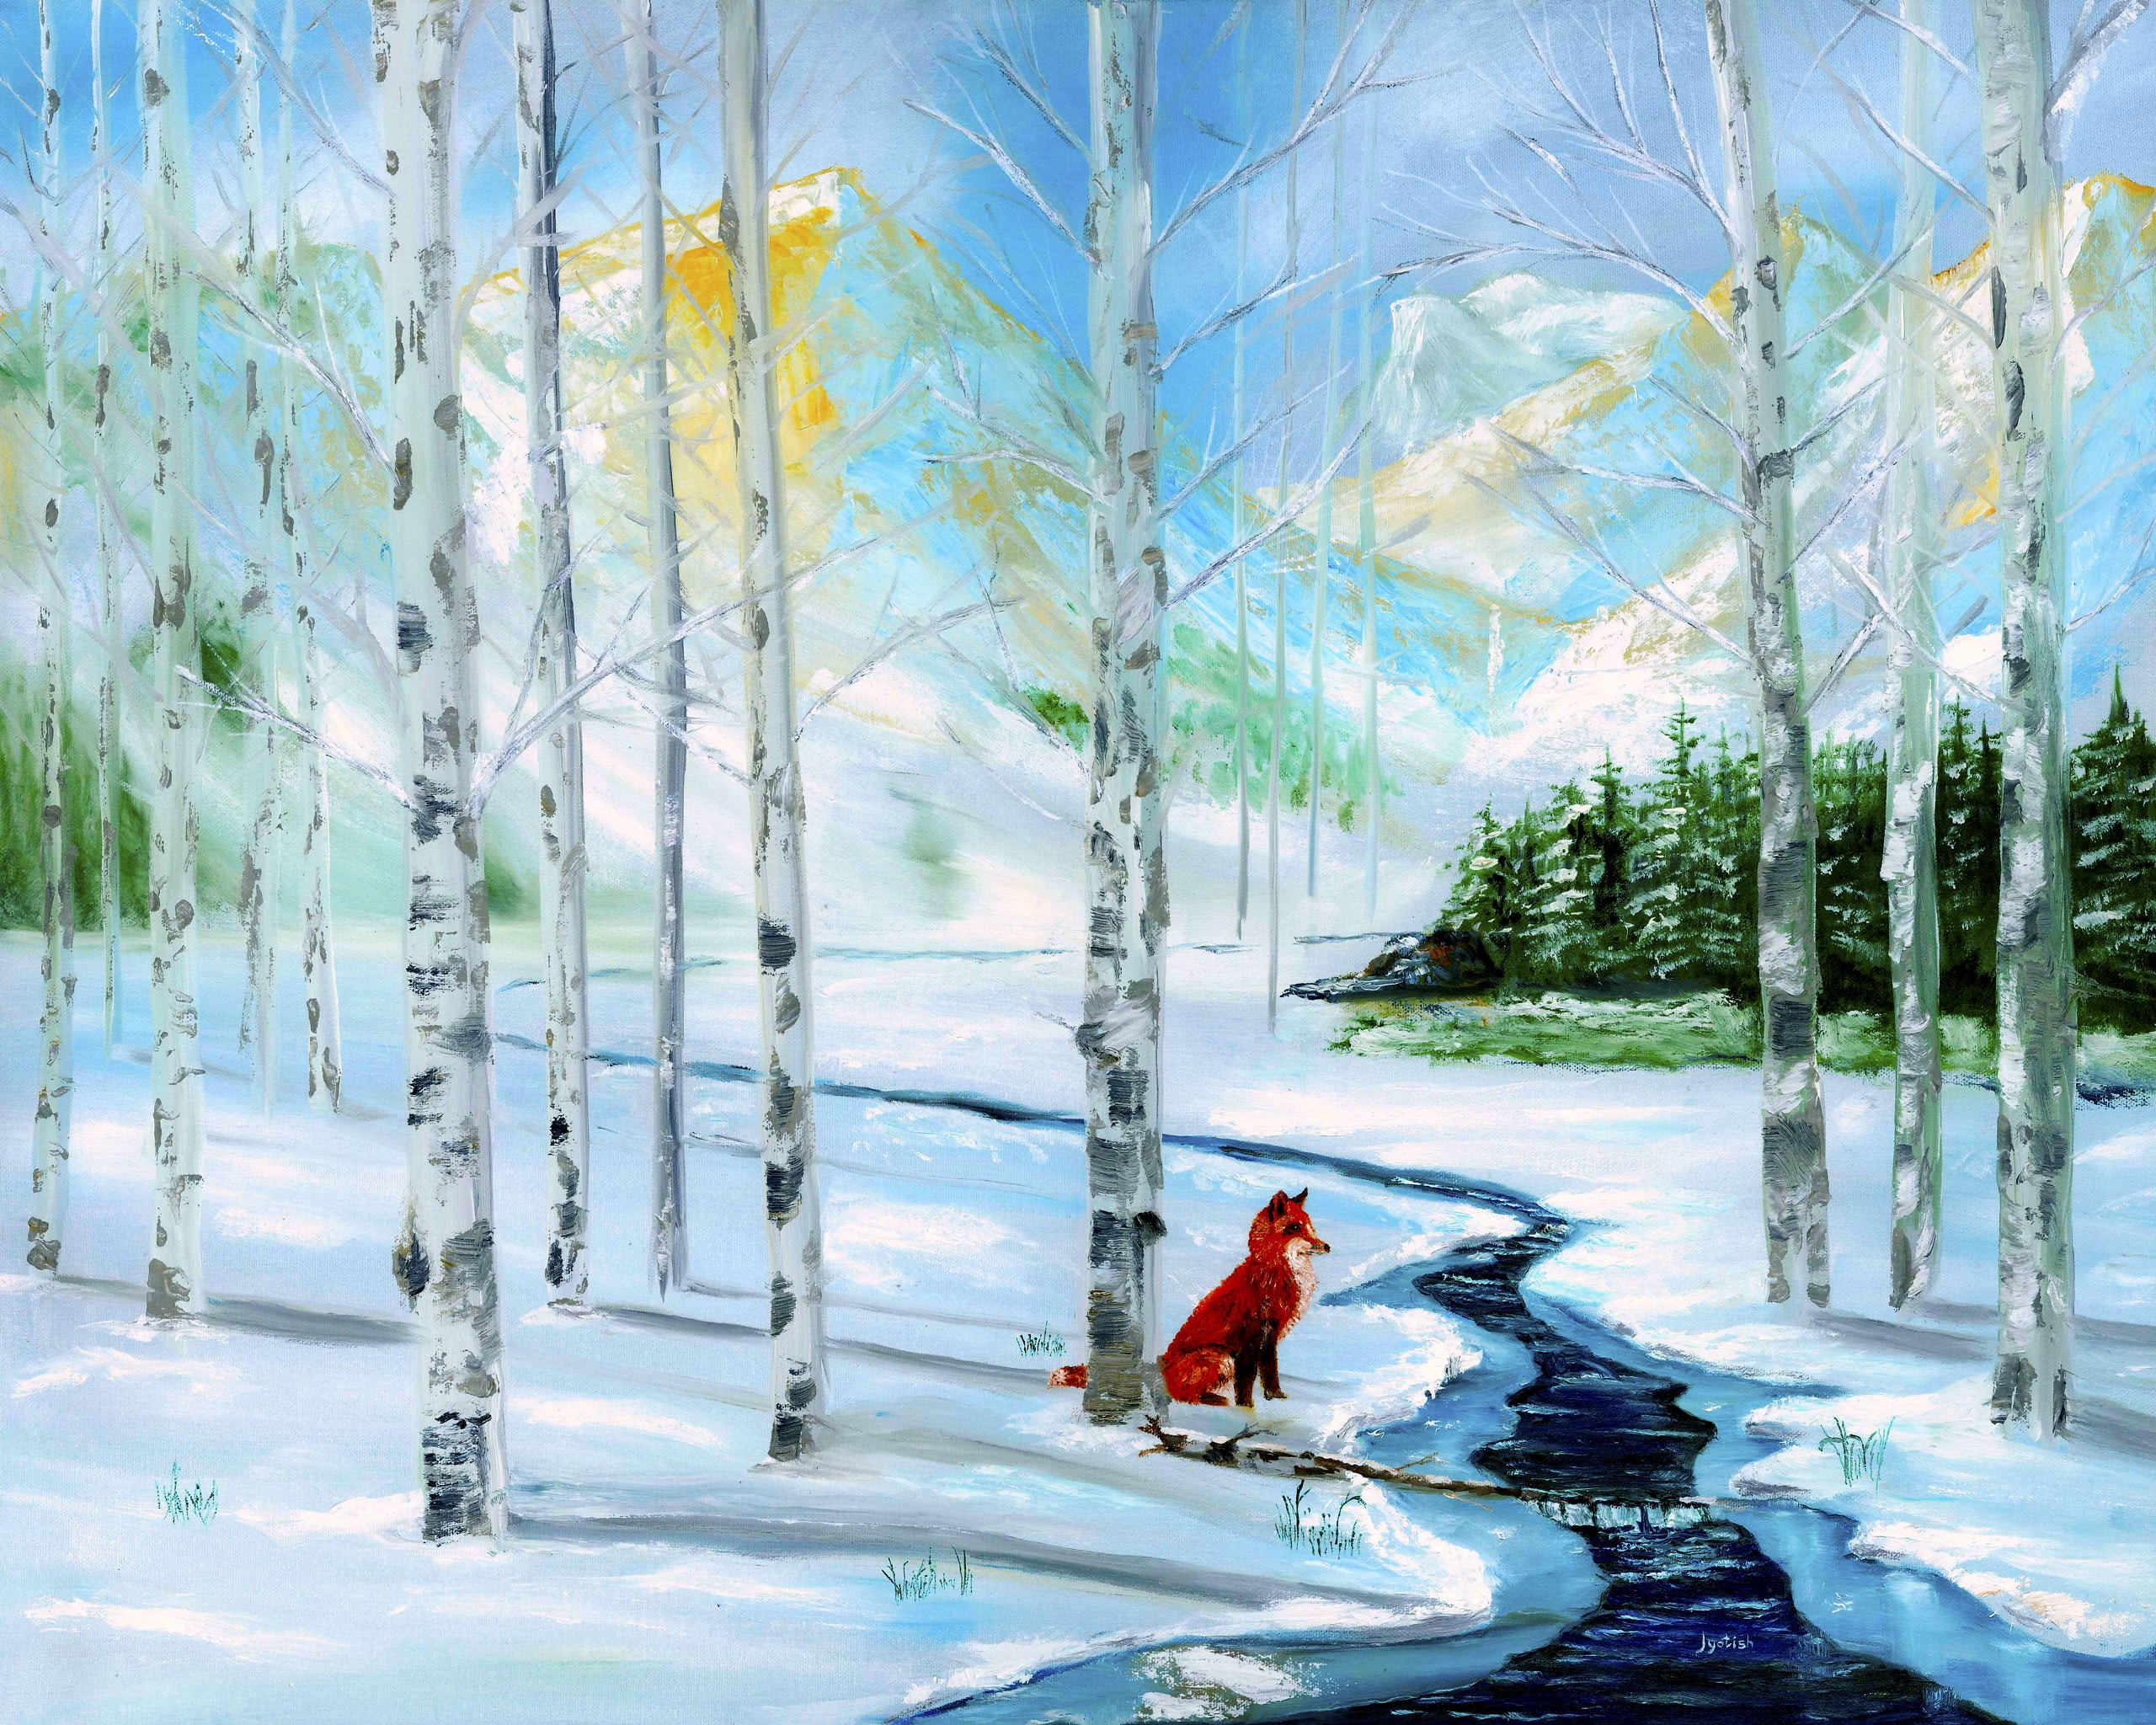 jyotish art paintings christmas morning snow, true meaning of christmas